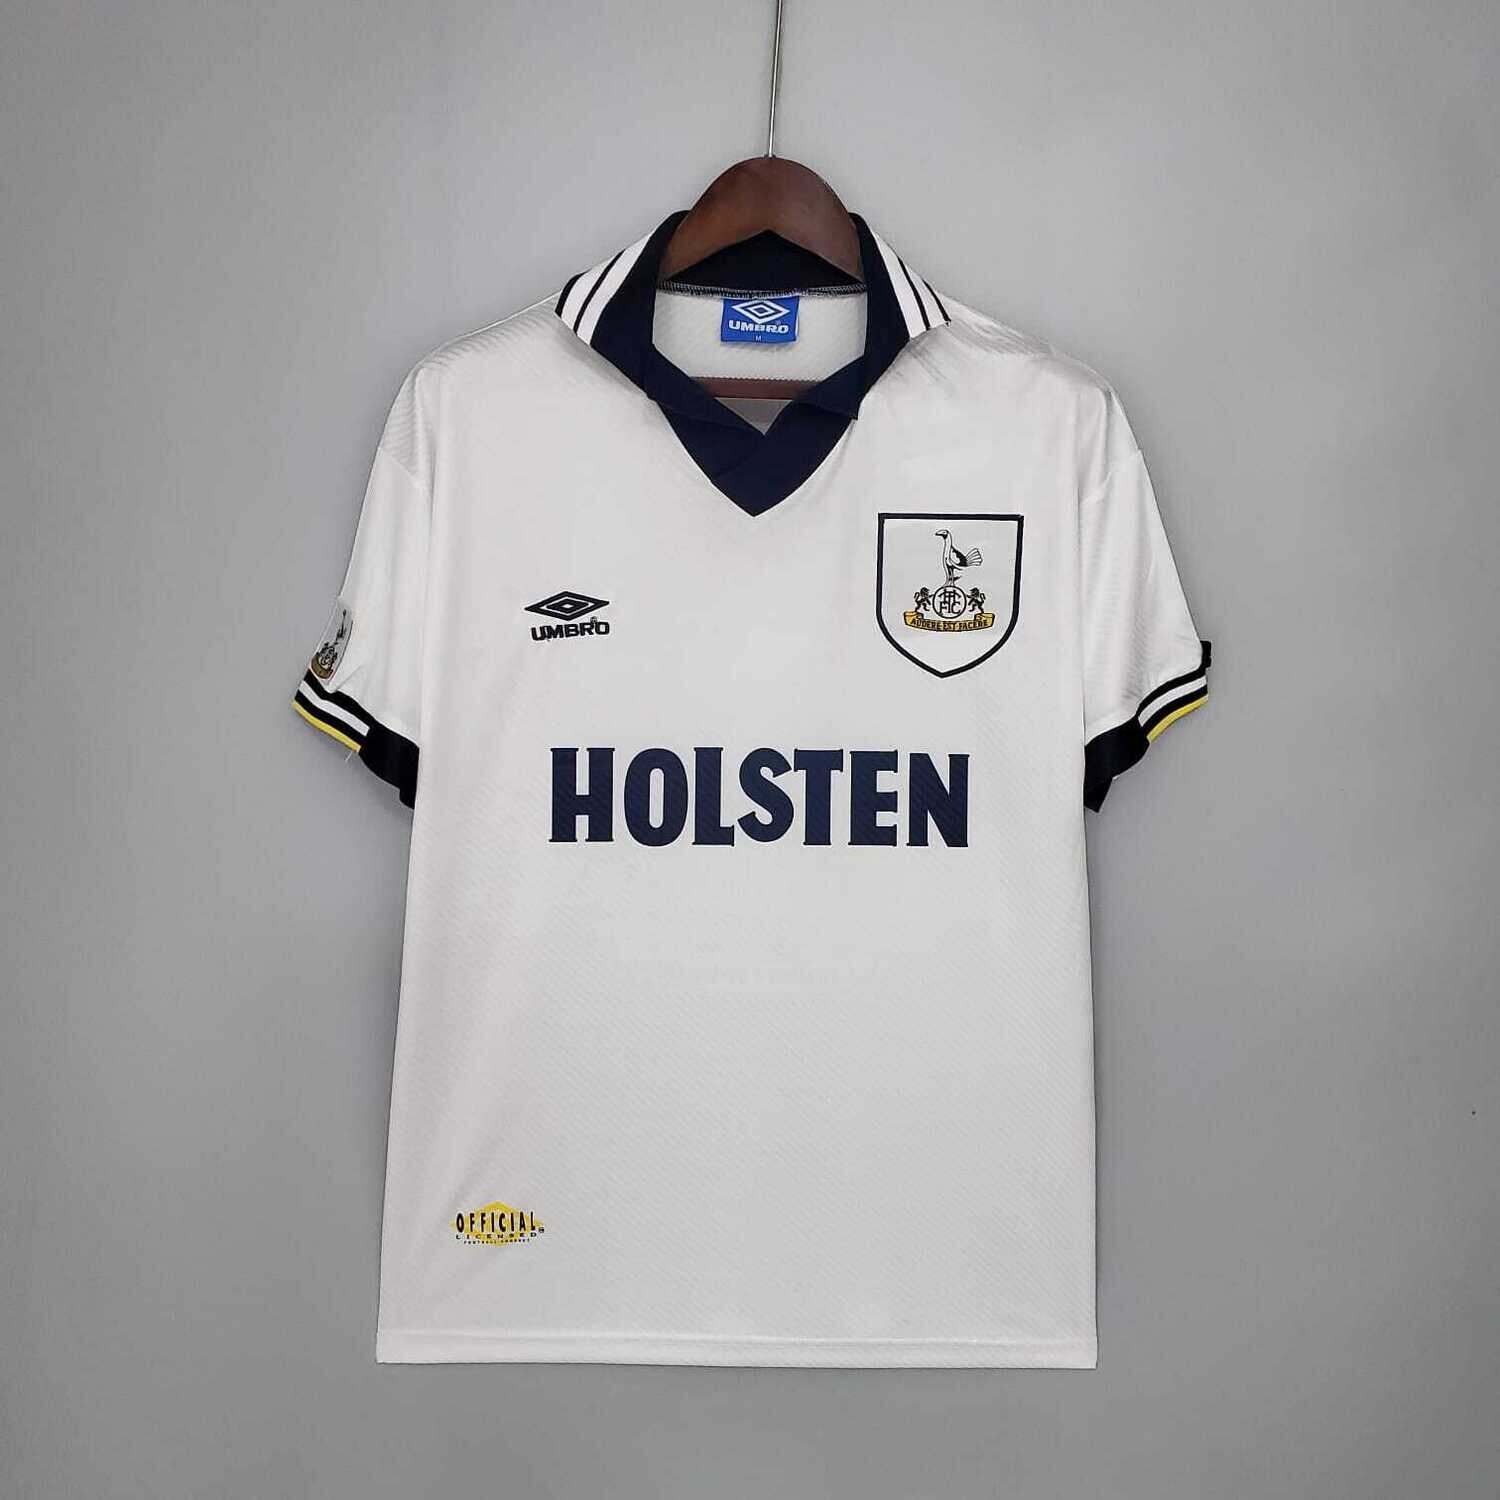 Tottenham Hotspur 1993-95 Retro Home Jersey [Pre-paid Only]